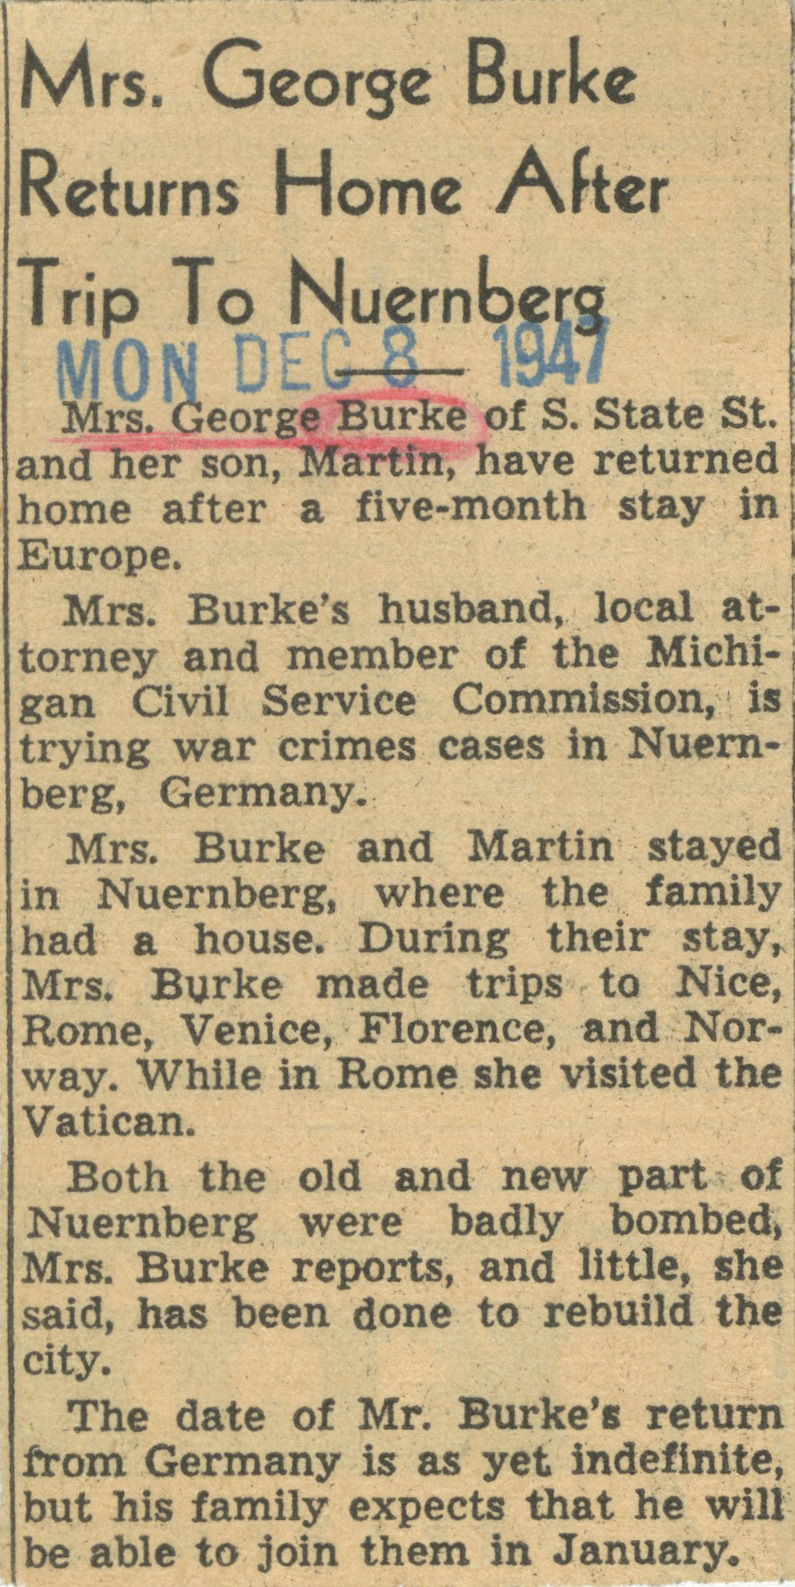 Mrs. George Burke Returns Home After Trip To Nuernberg image